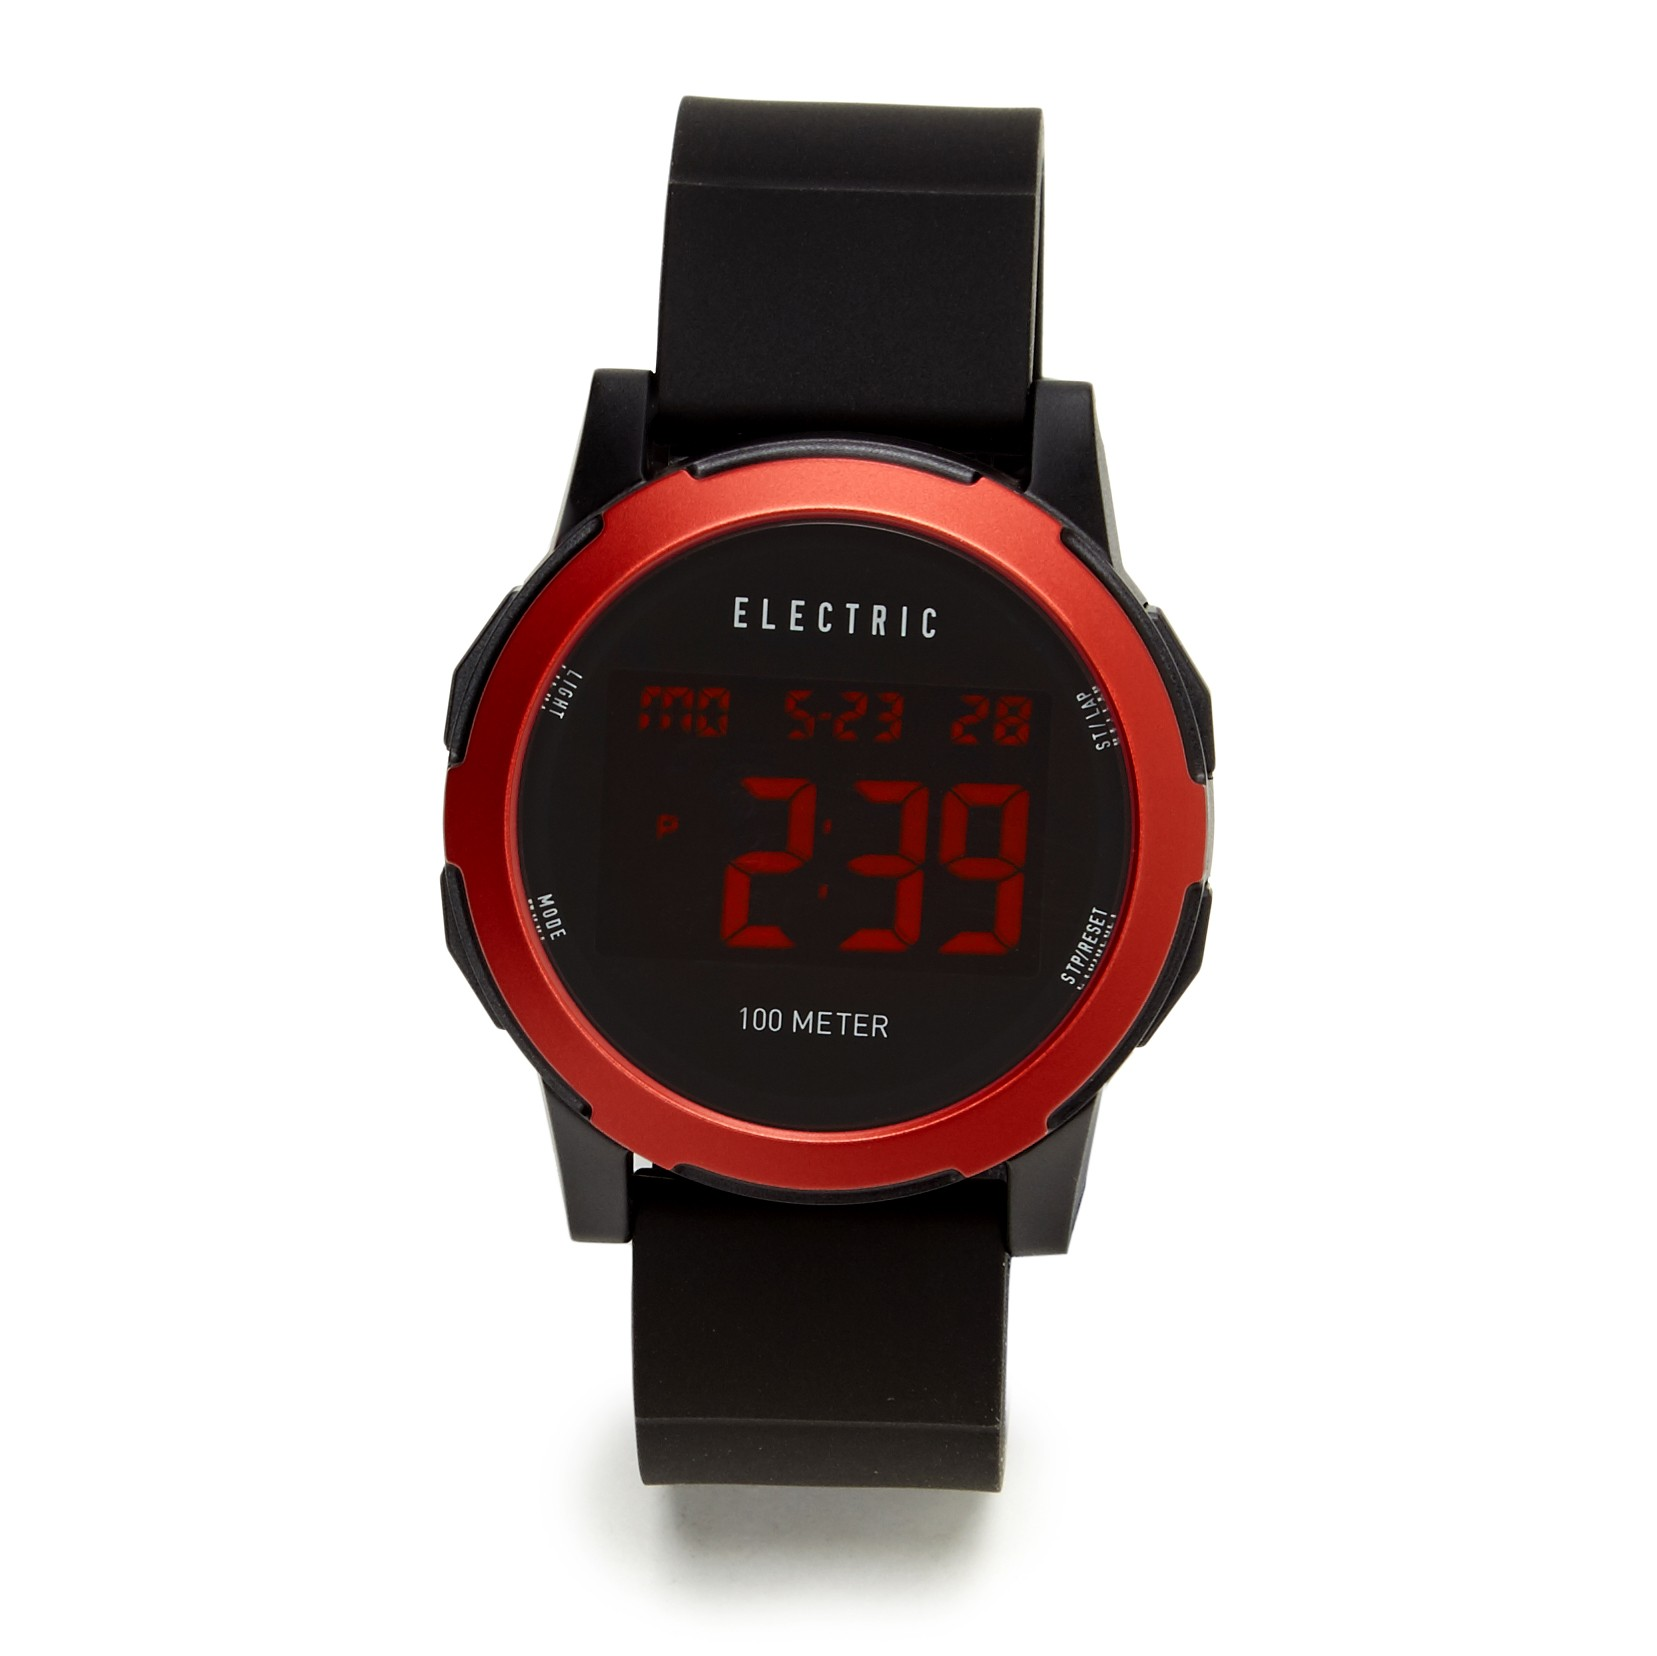 Electric Prime Watch - All Black/Red